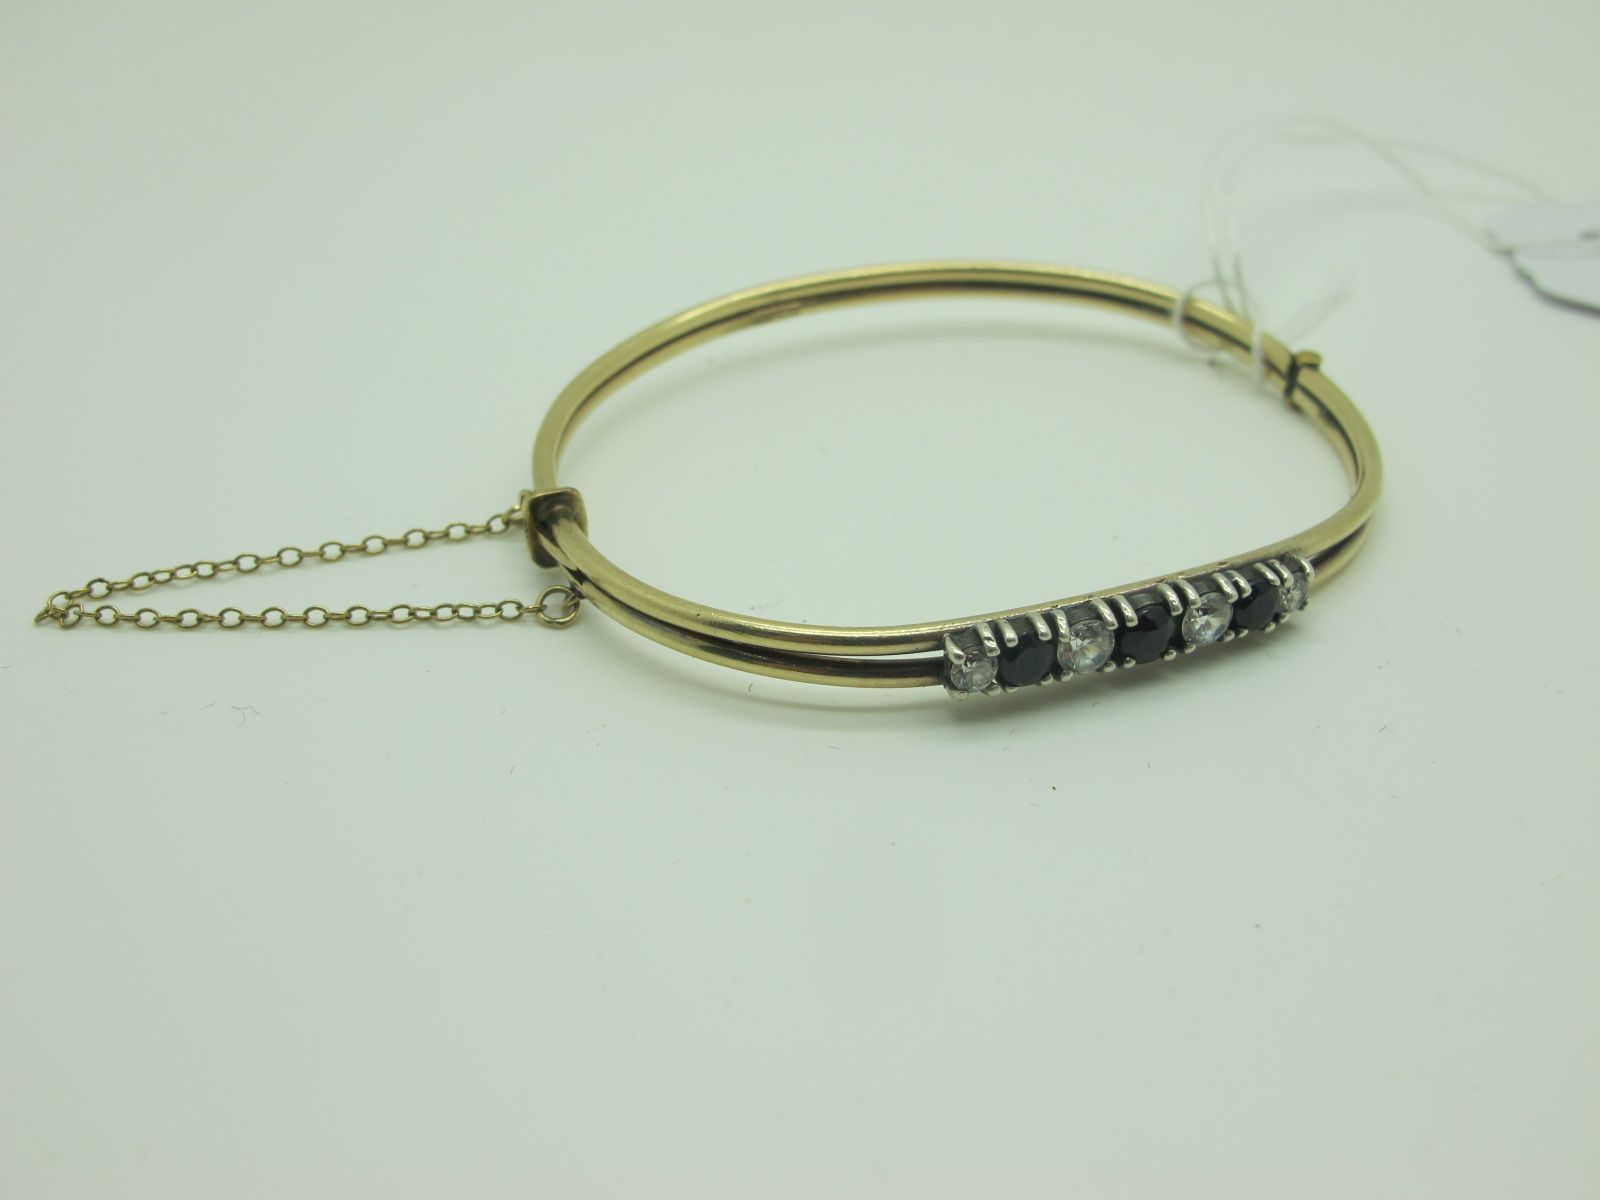 A Fancy Bangle, of two row design, alternate claw set details, to snap clasp, with safety chain,